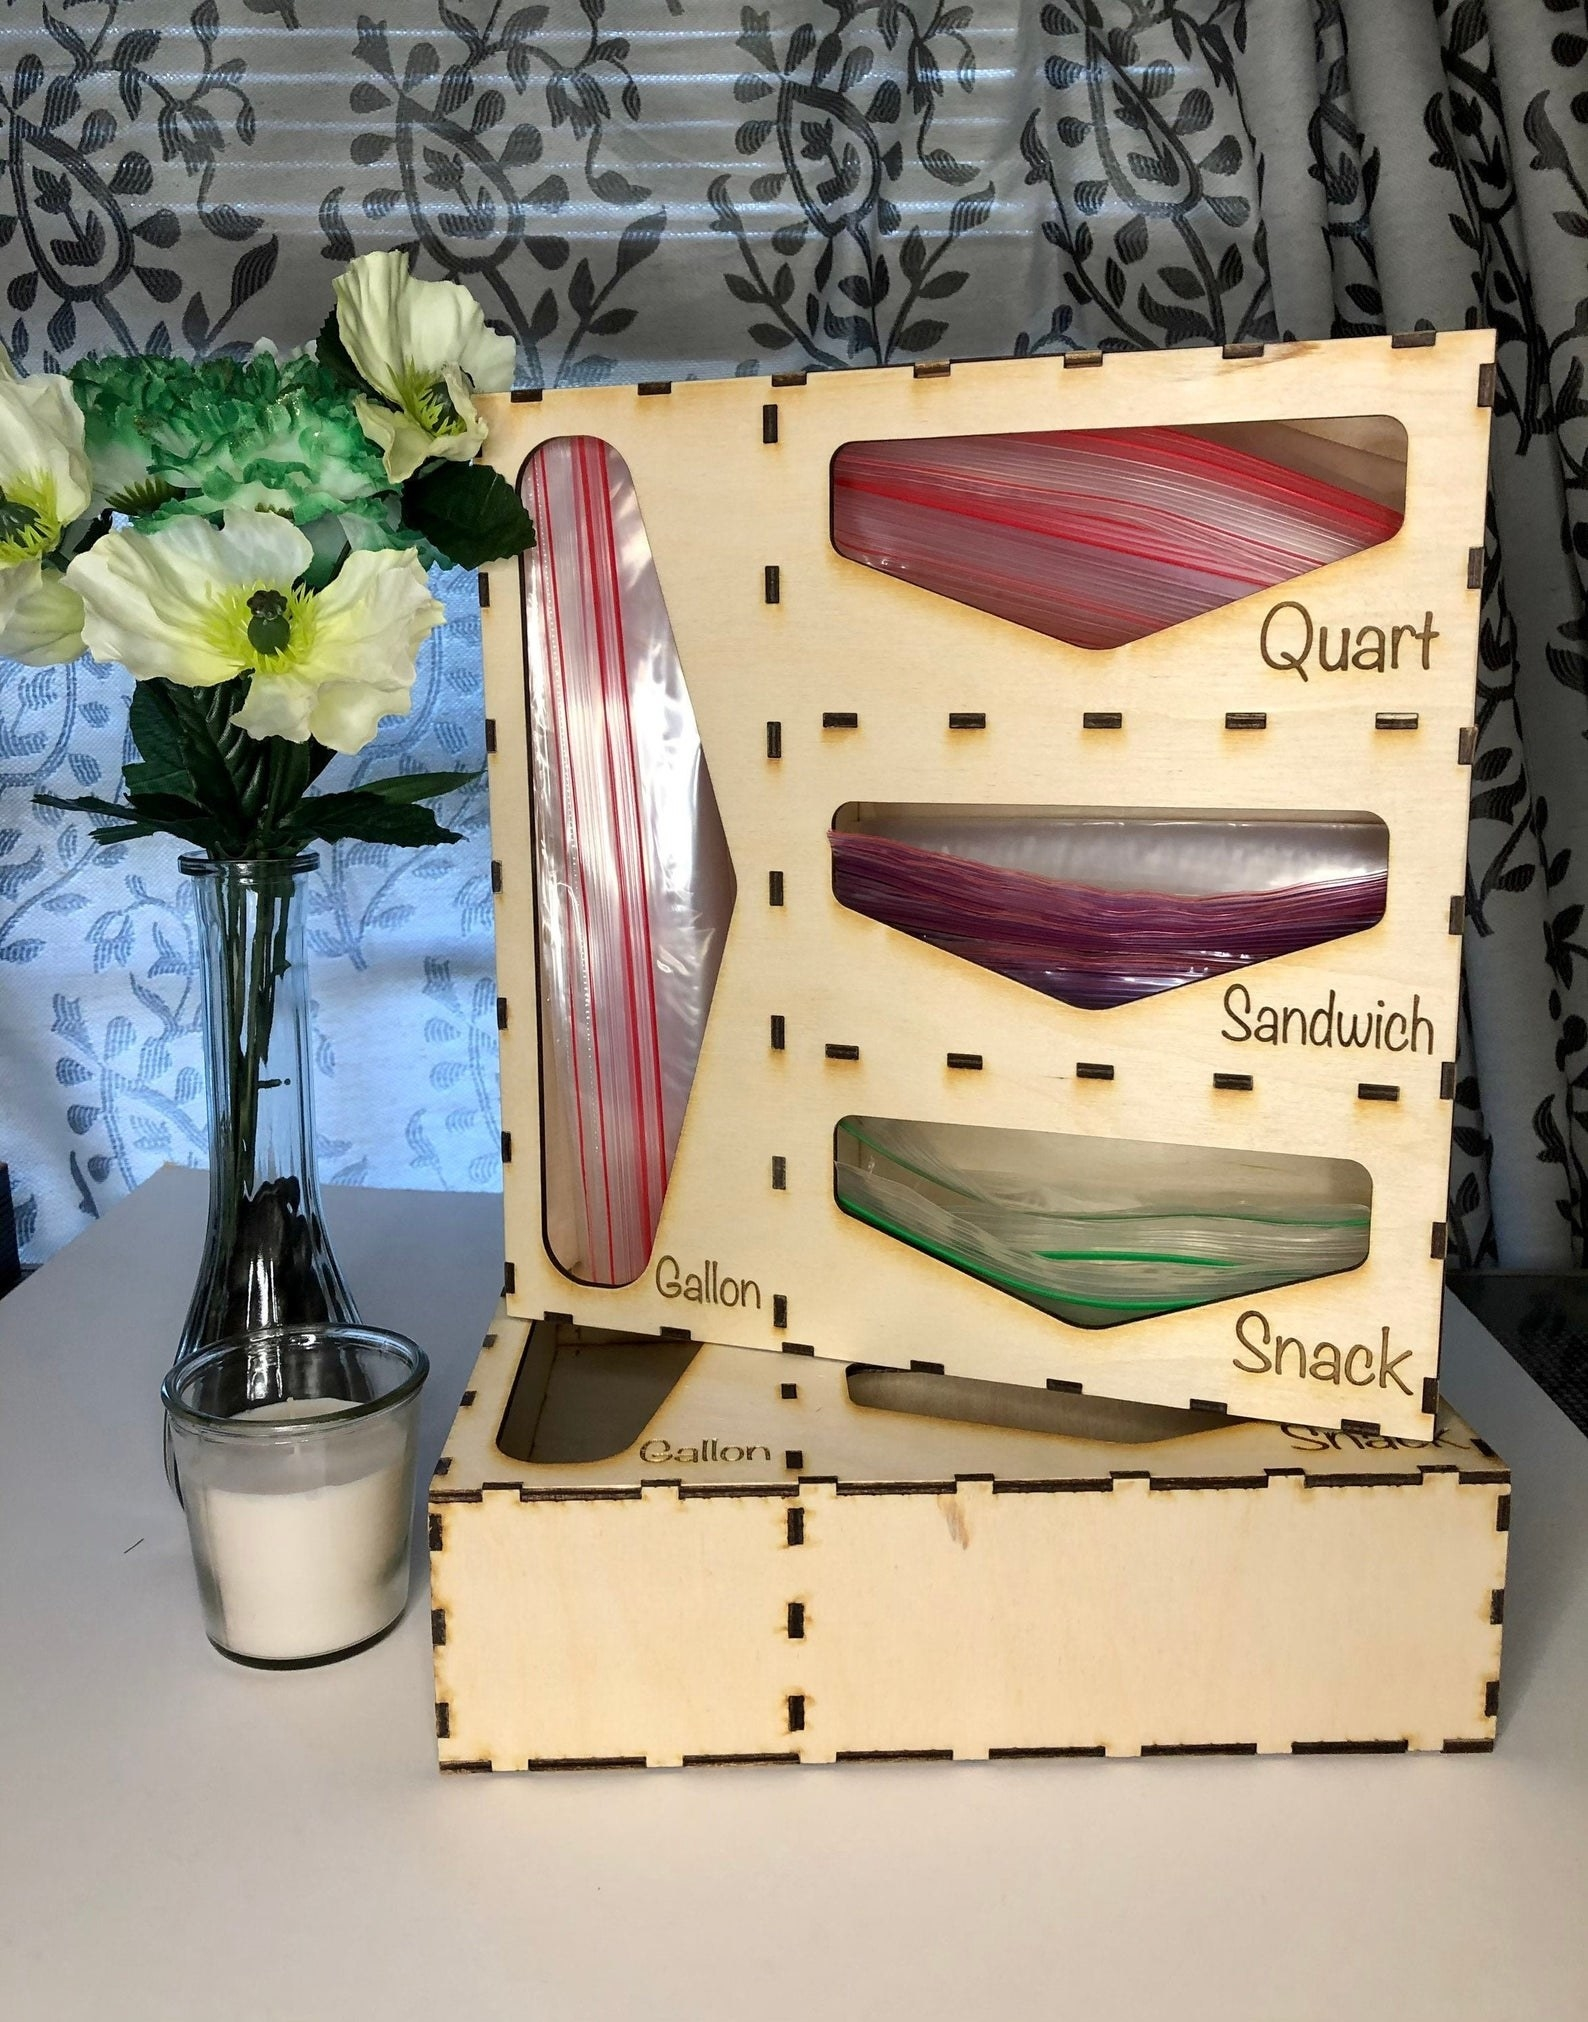 The wood set with space for gallon, quart, sandwich, and snack bags